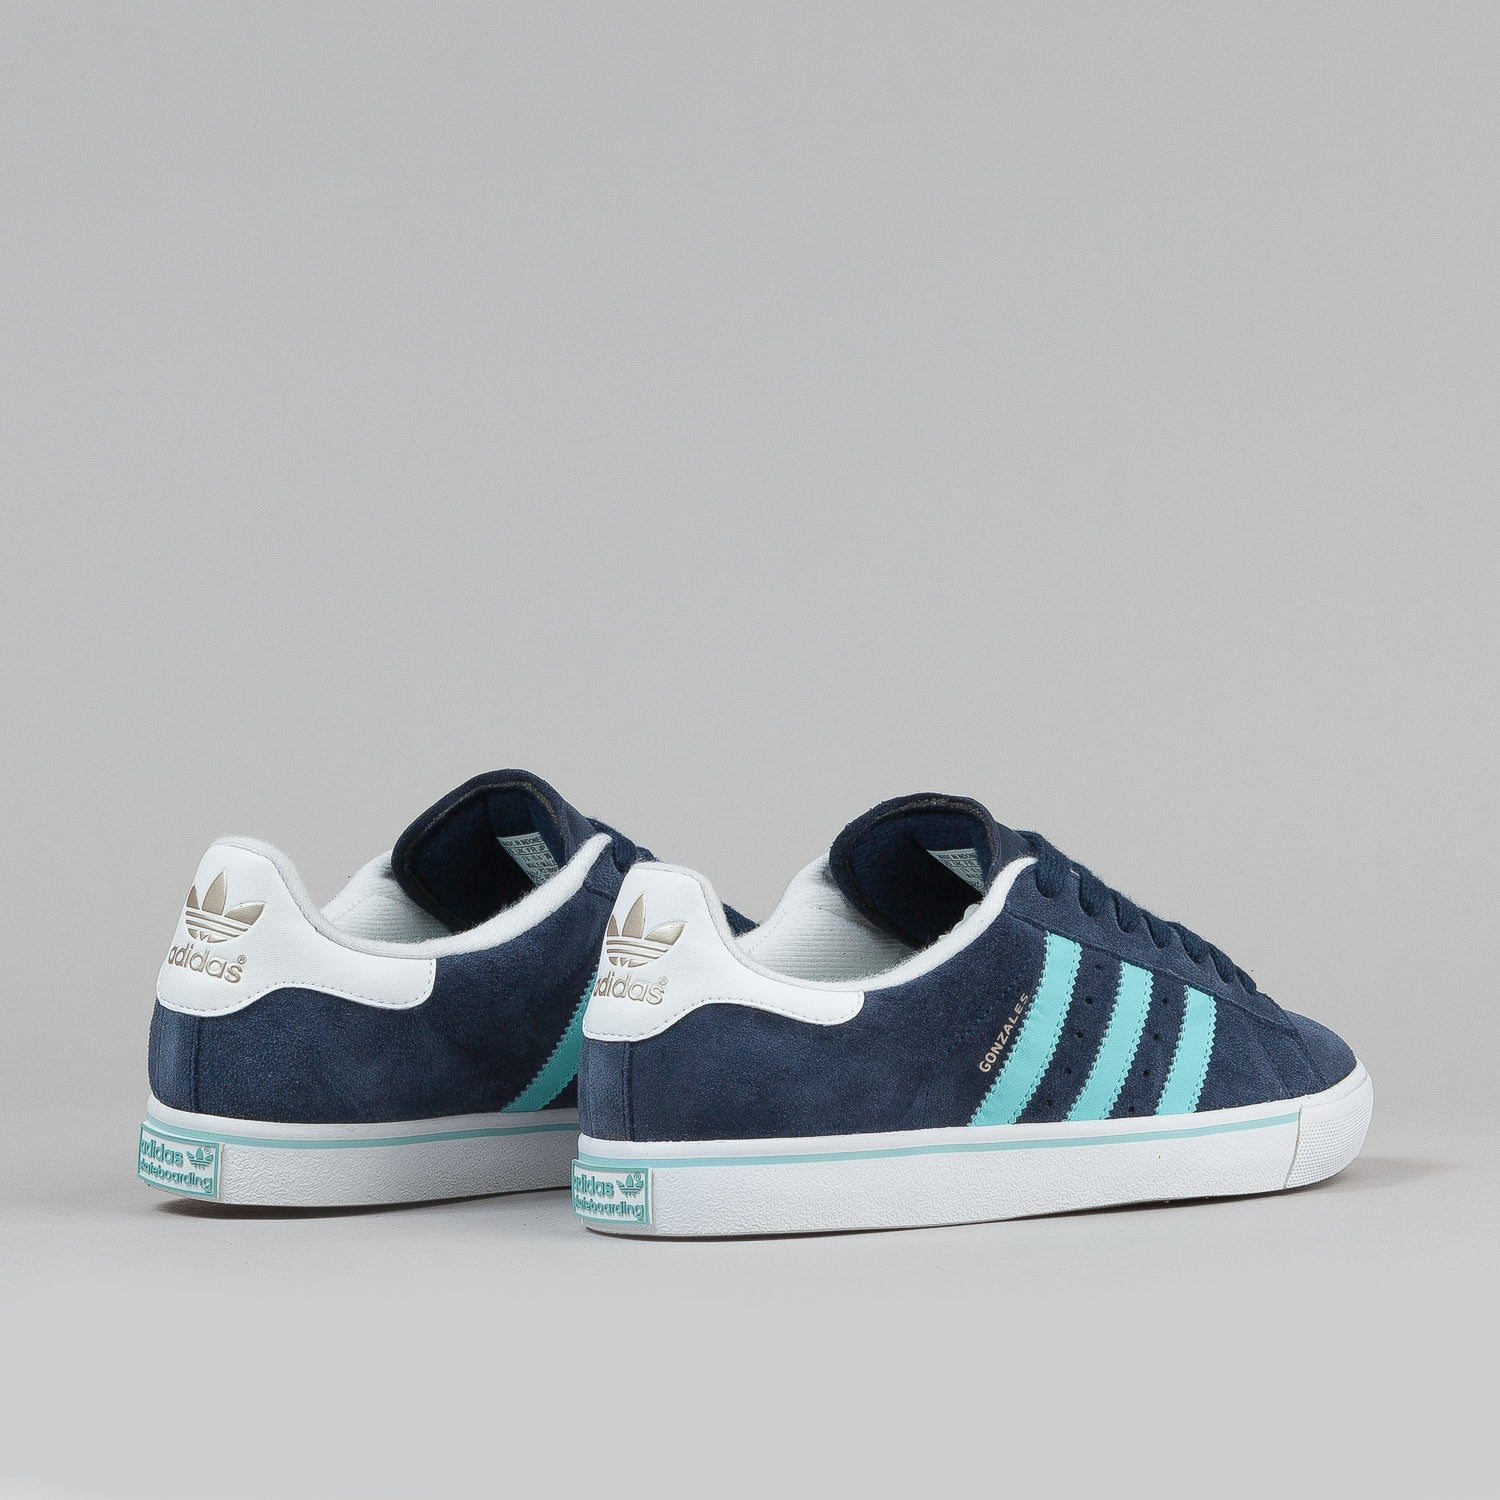 Adidas Campus Vulc 'Gonz' Shoes - Collegiate Navy / Ocean / White